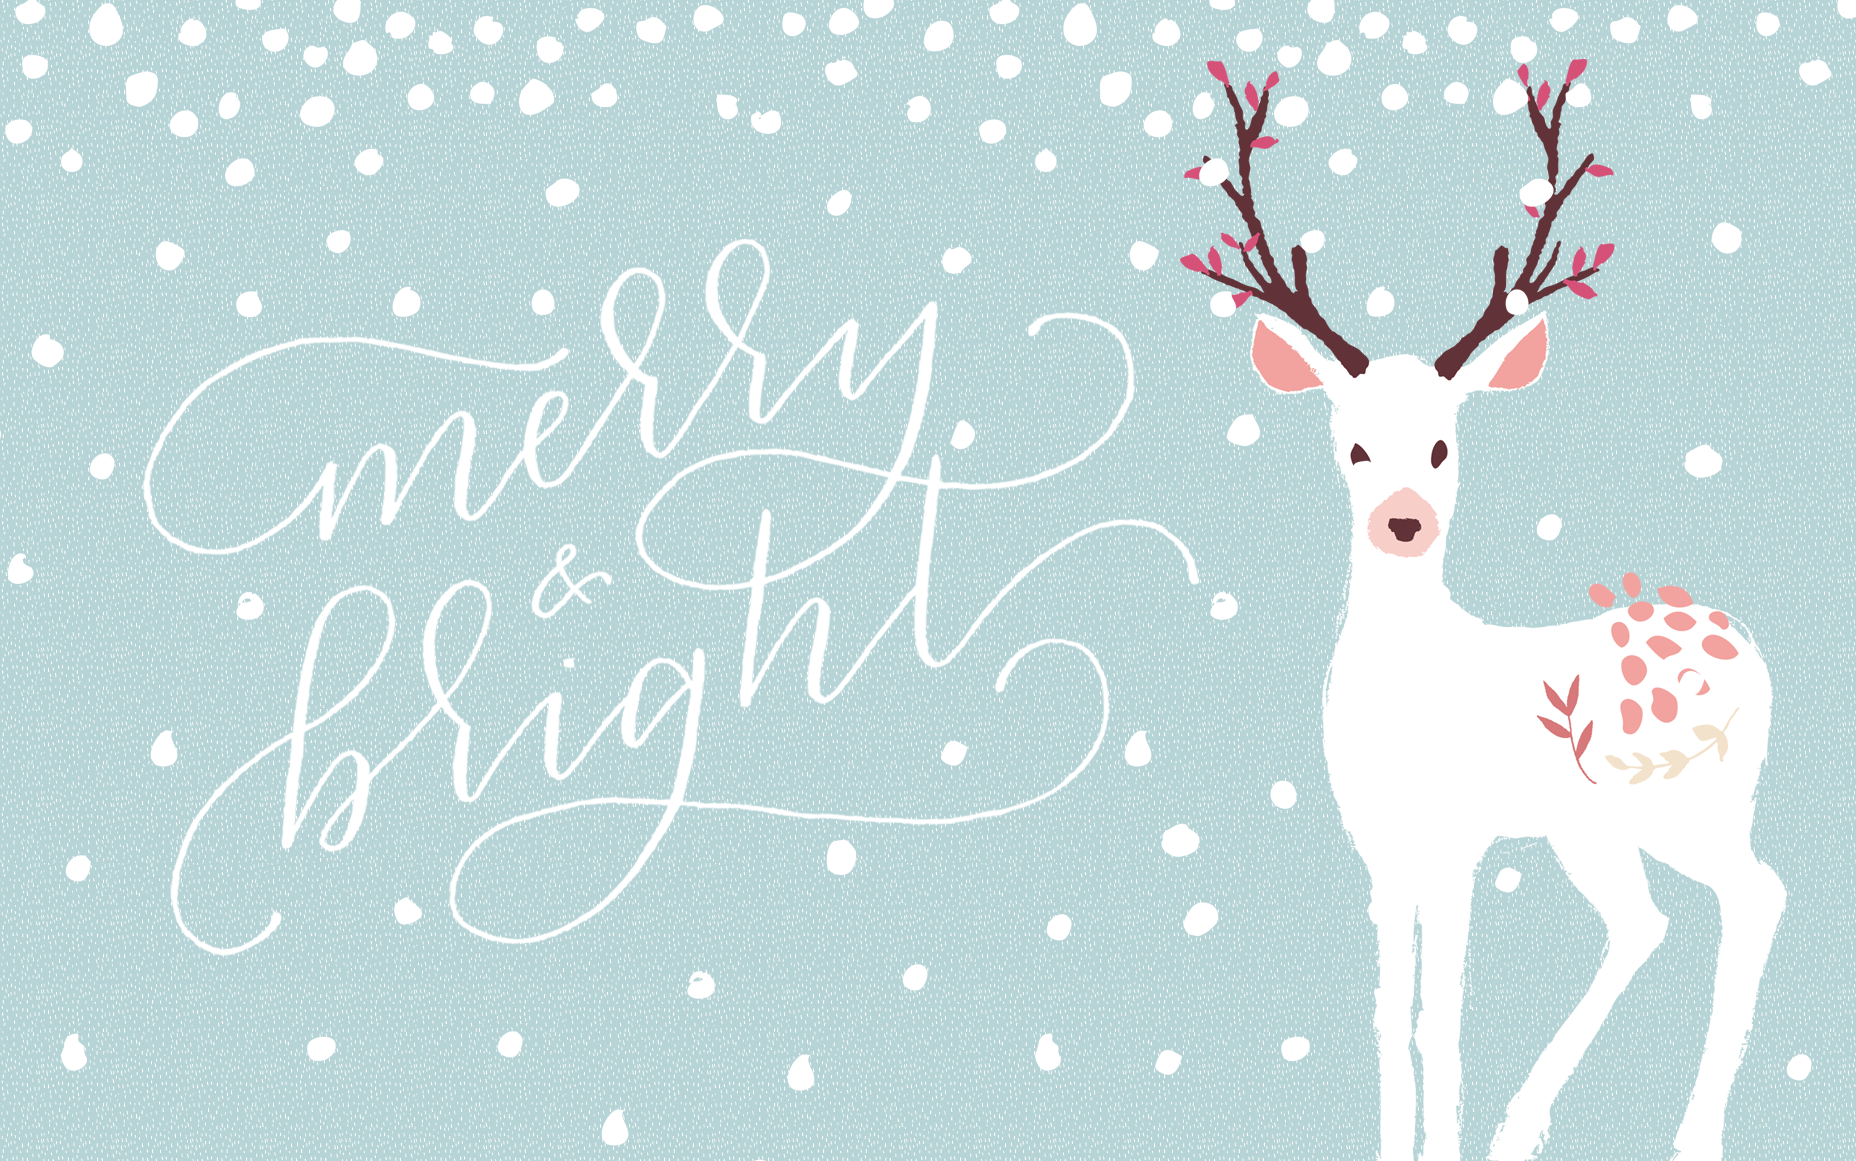 December Wallpaper Amanda Genther Christmas Desktop Wallpaper Cute Christmas Backgrounds Cute Christmas Wallpaper